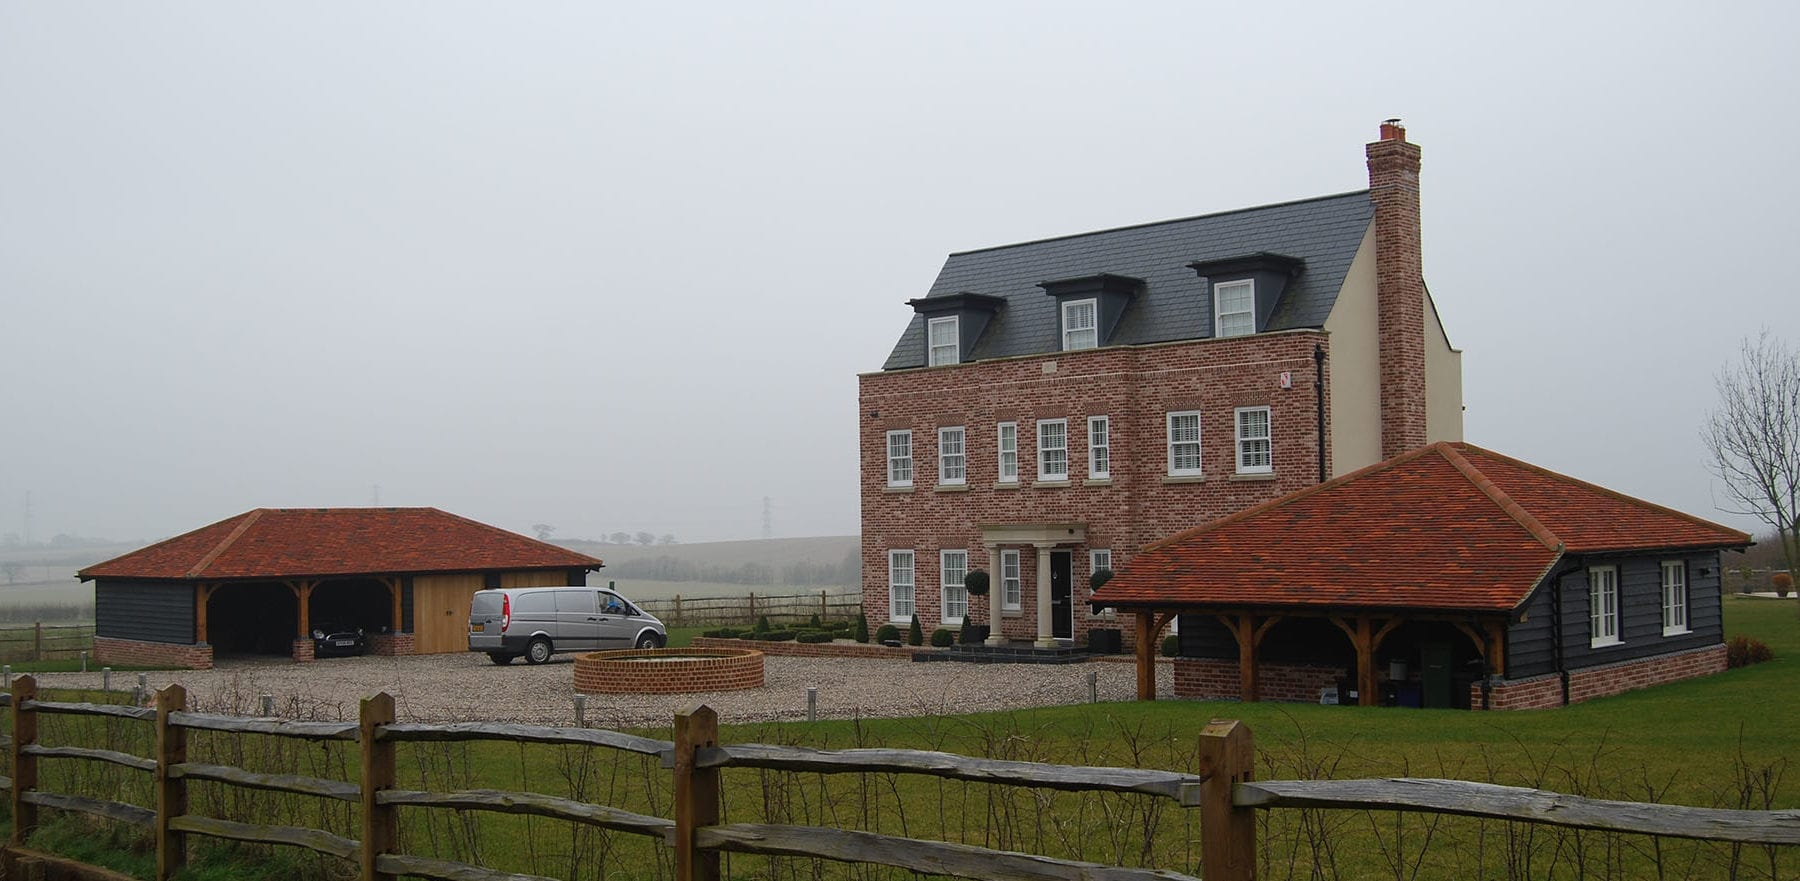 Lifestiles - Spanish Natural Slate Roof Tiles - Cold Norton, England 2